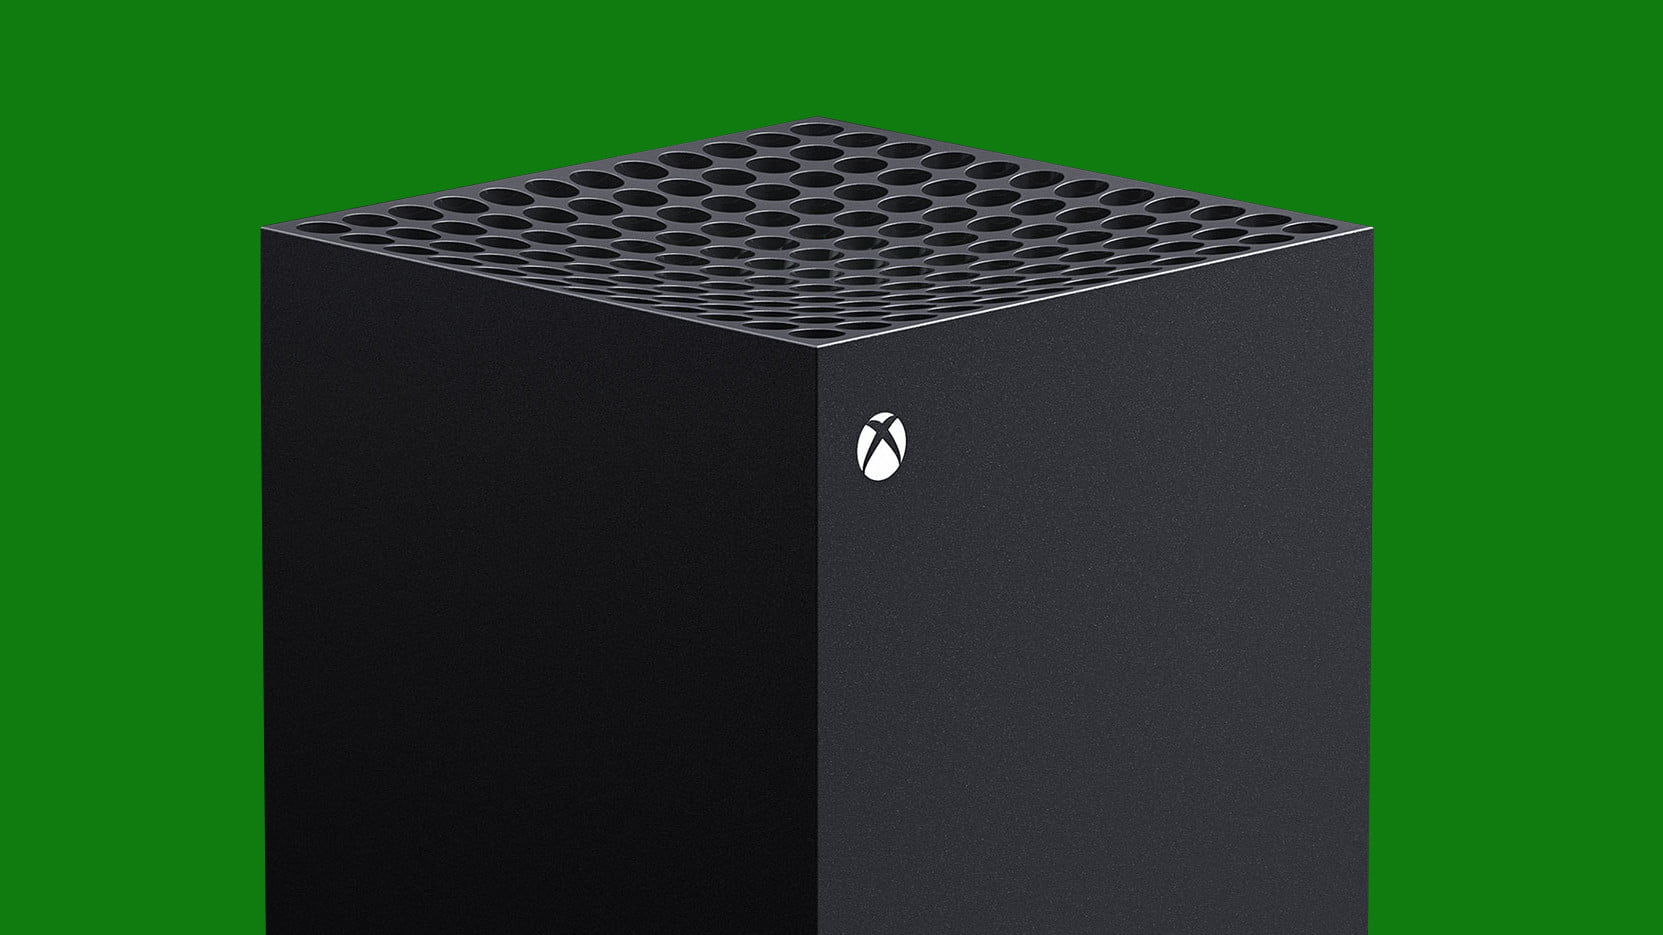 Forget ray tracing. The biggest upgrade to the Xbox Series X will be storage